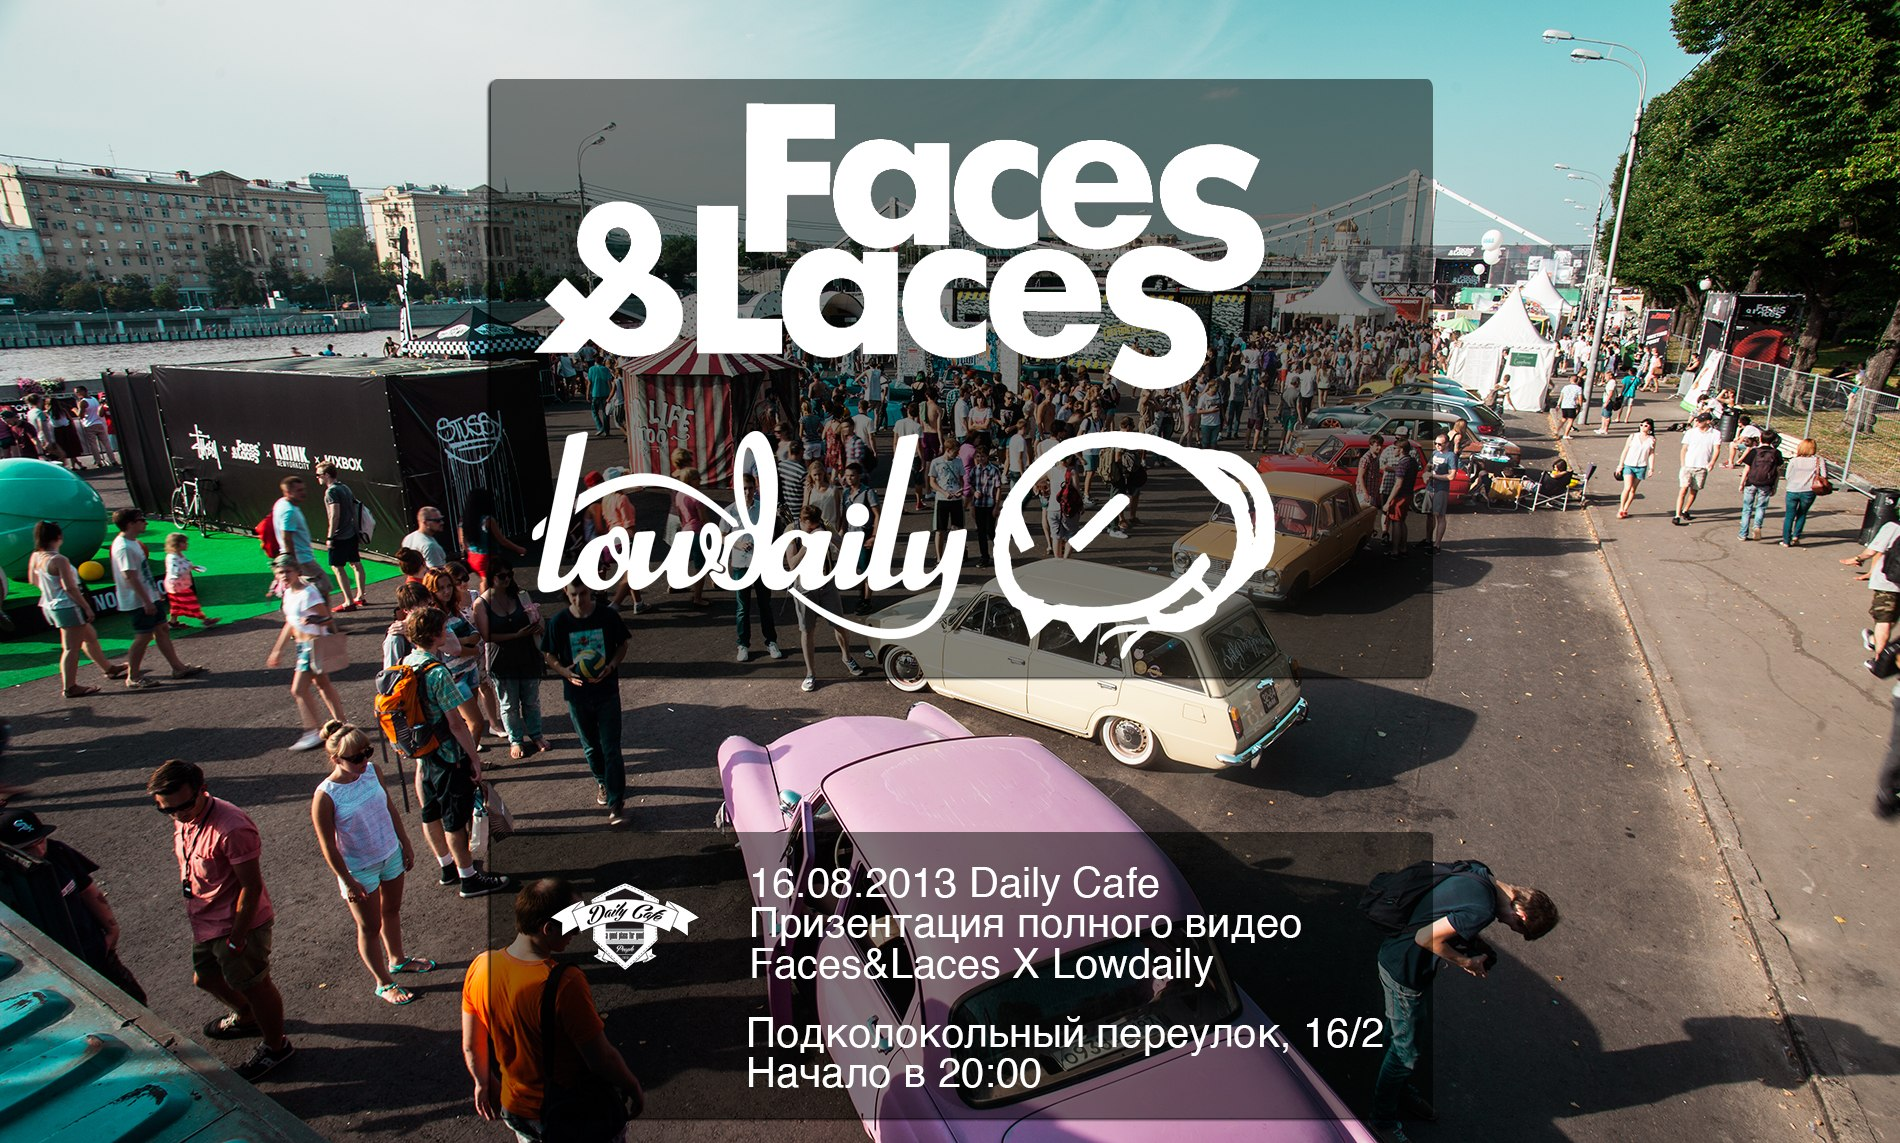 FACES&LACES X LOWDAILY Video TEASER